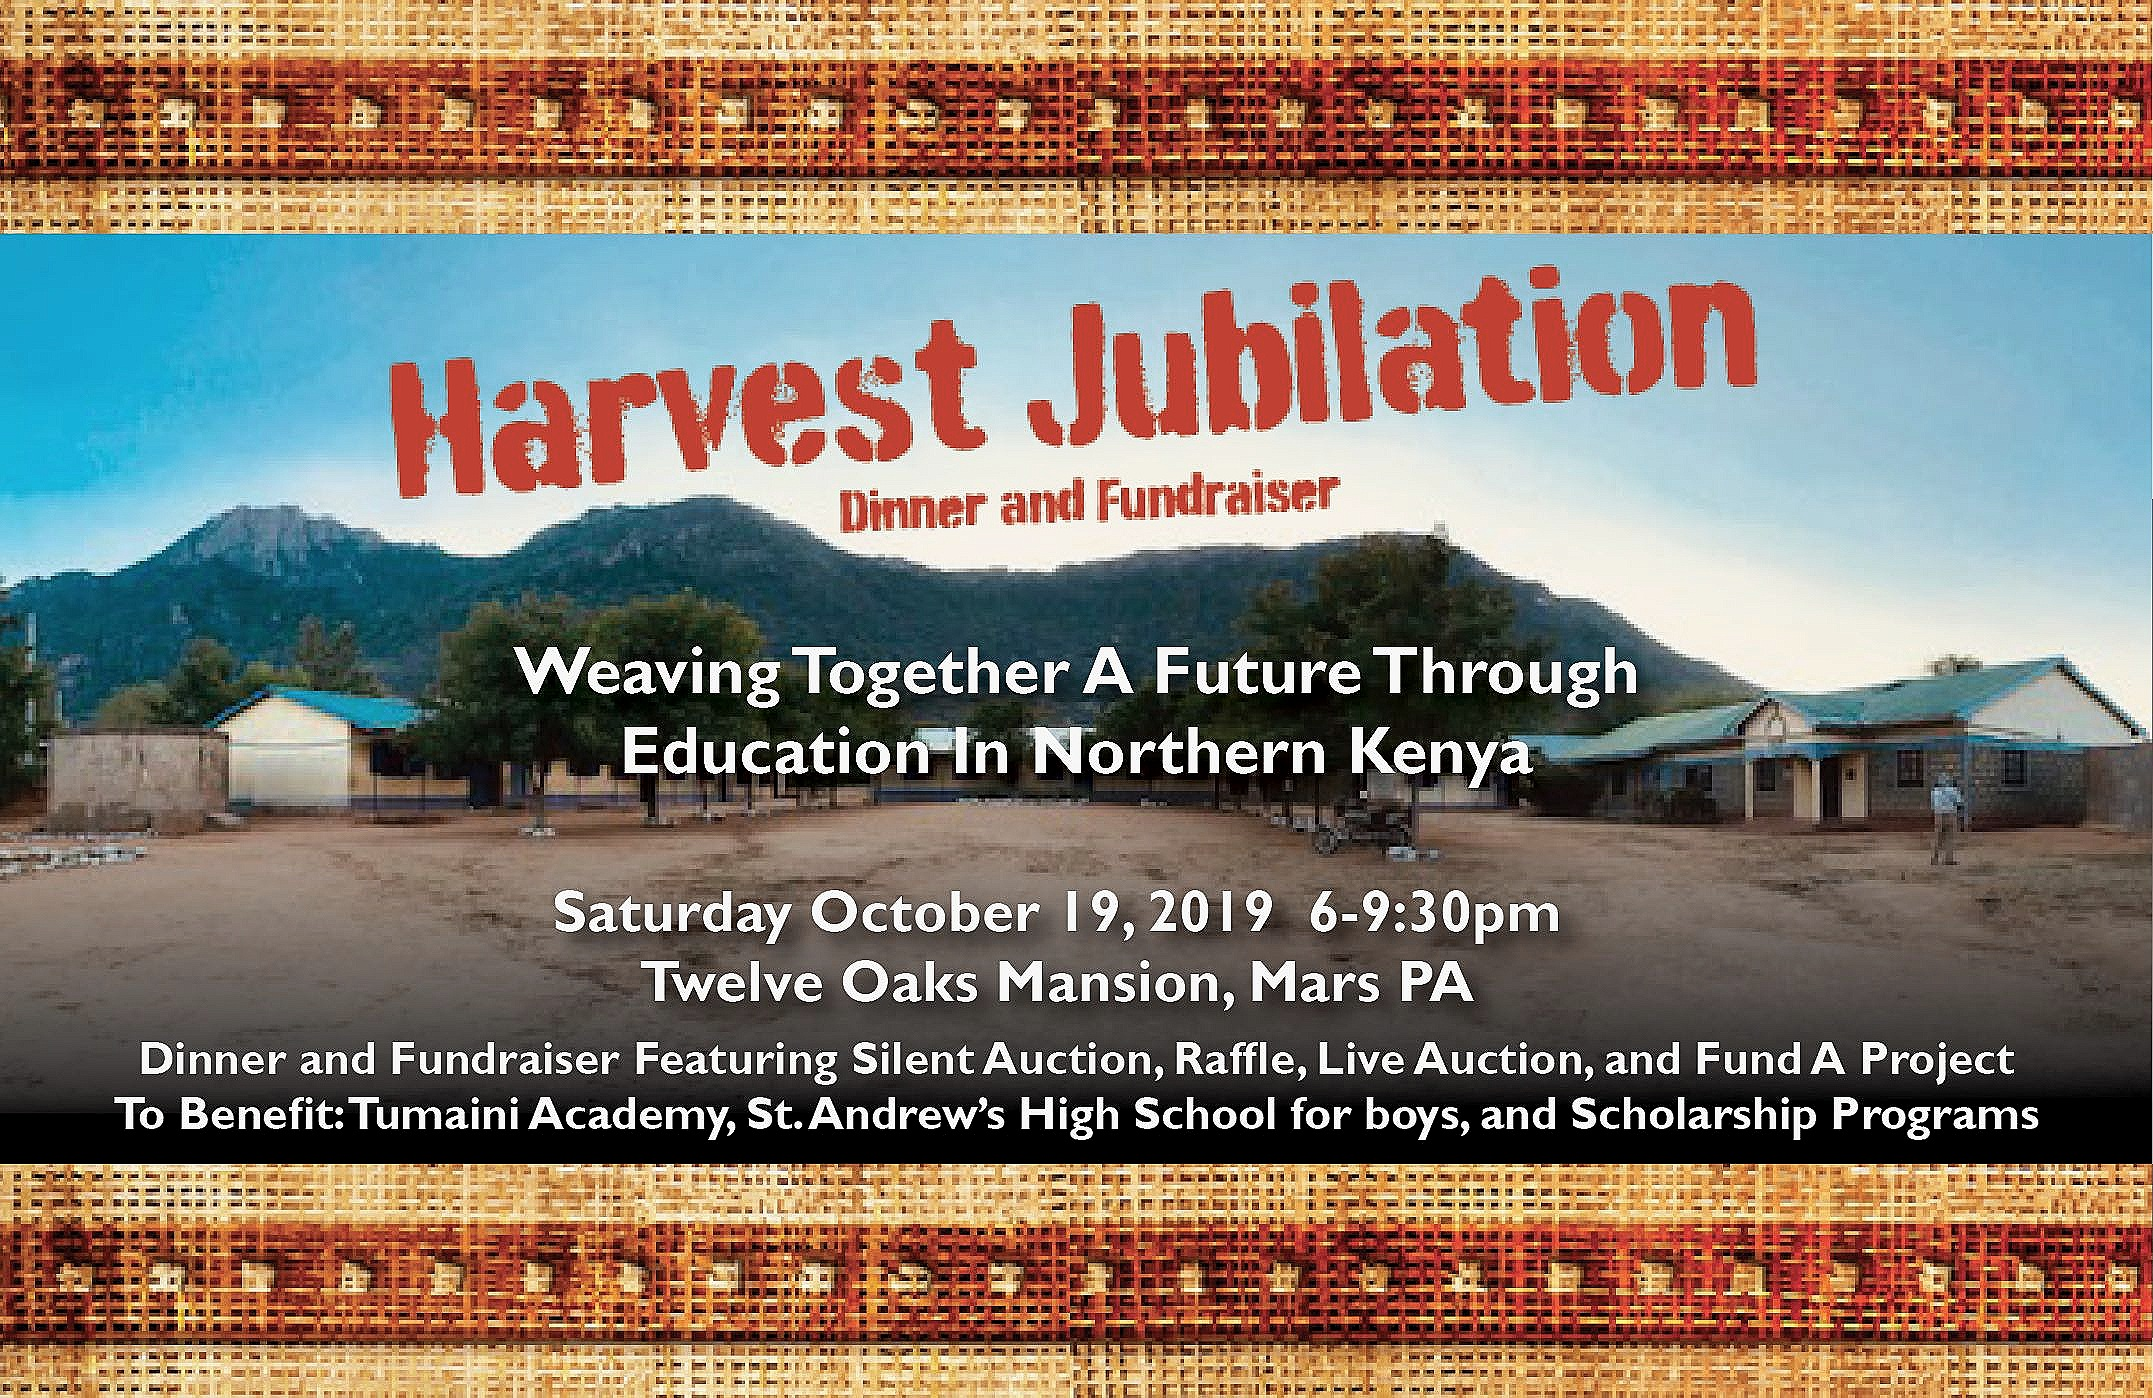 Harvest Jubilation! - Purchase your tickets here.